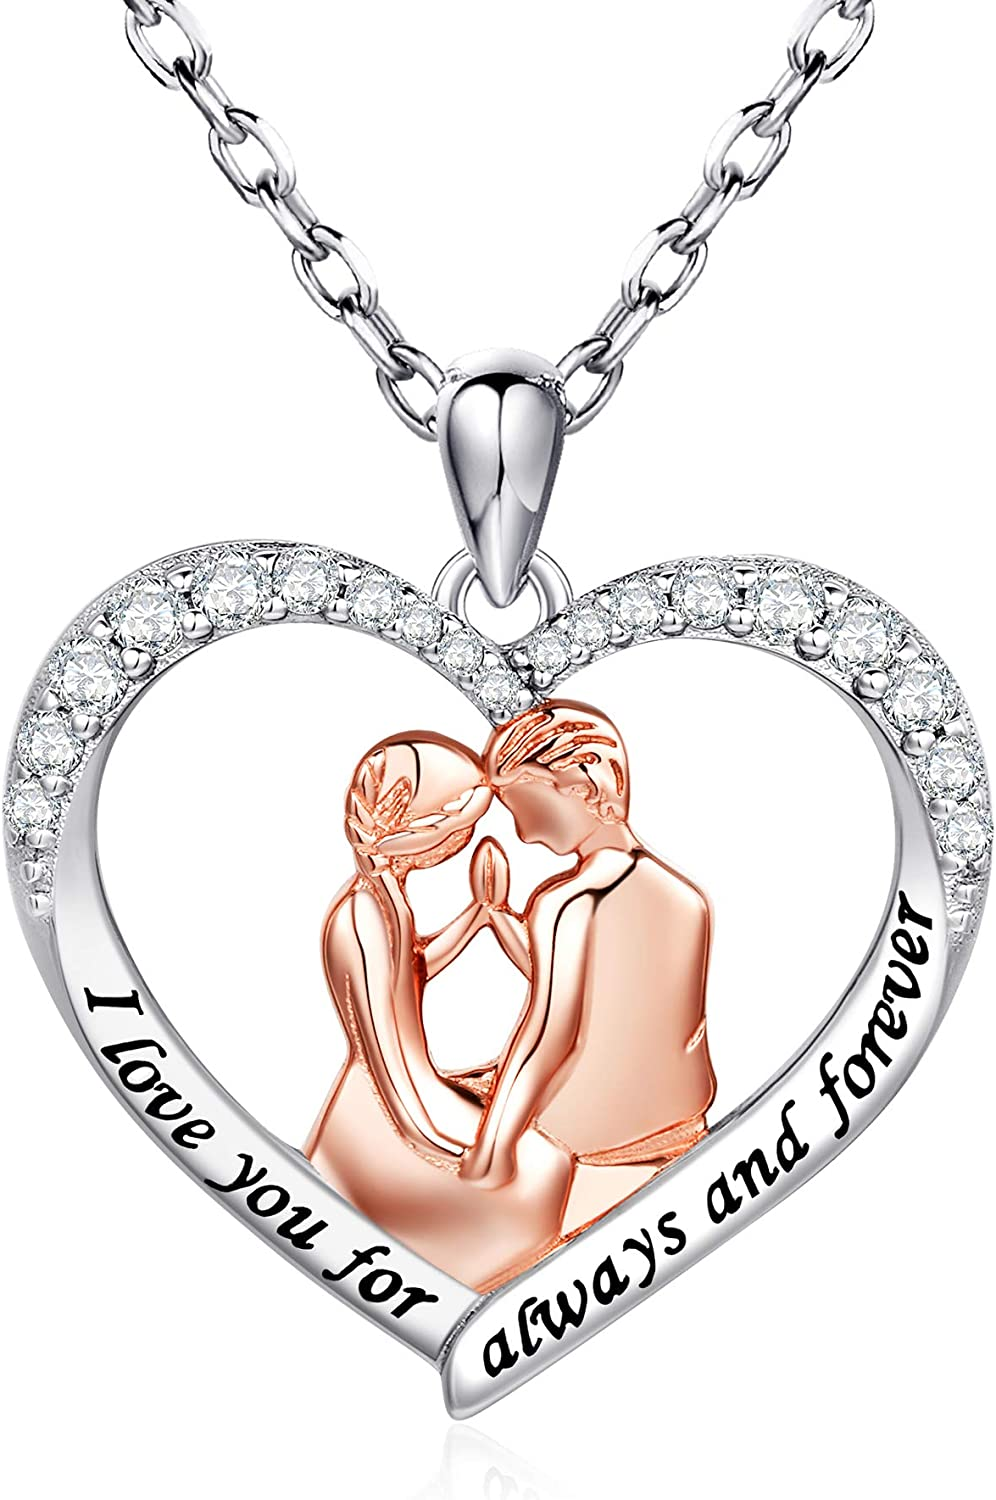 Valentines Gift Pendant Initial Jewellery Cute Puppy Sterling Silver Necklace Gift for Her